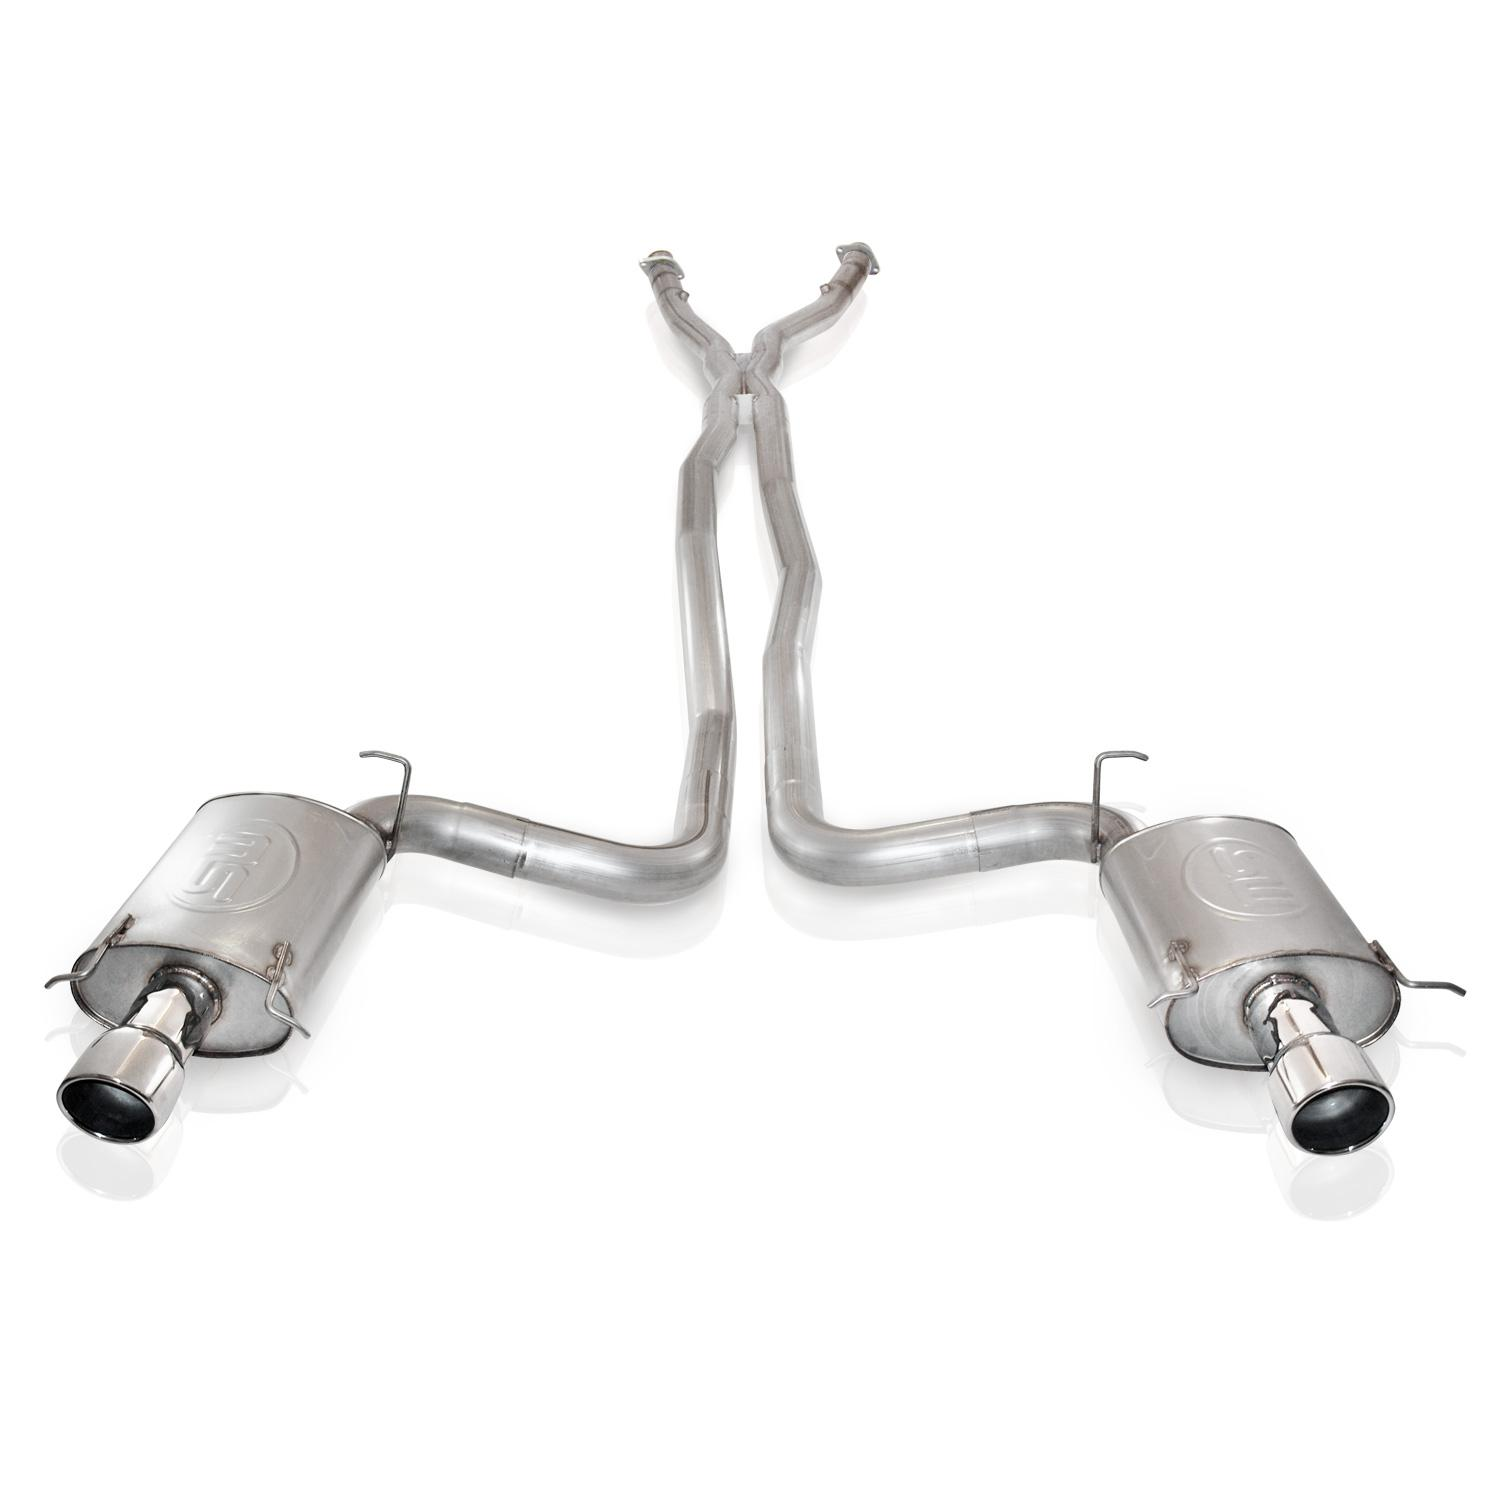 CORSA 14940 Cat-Back System